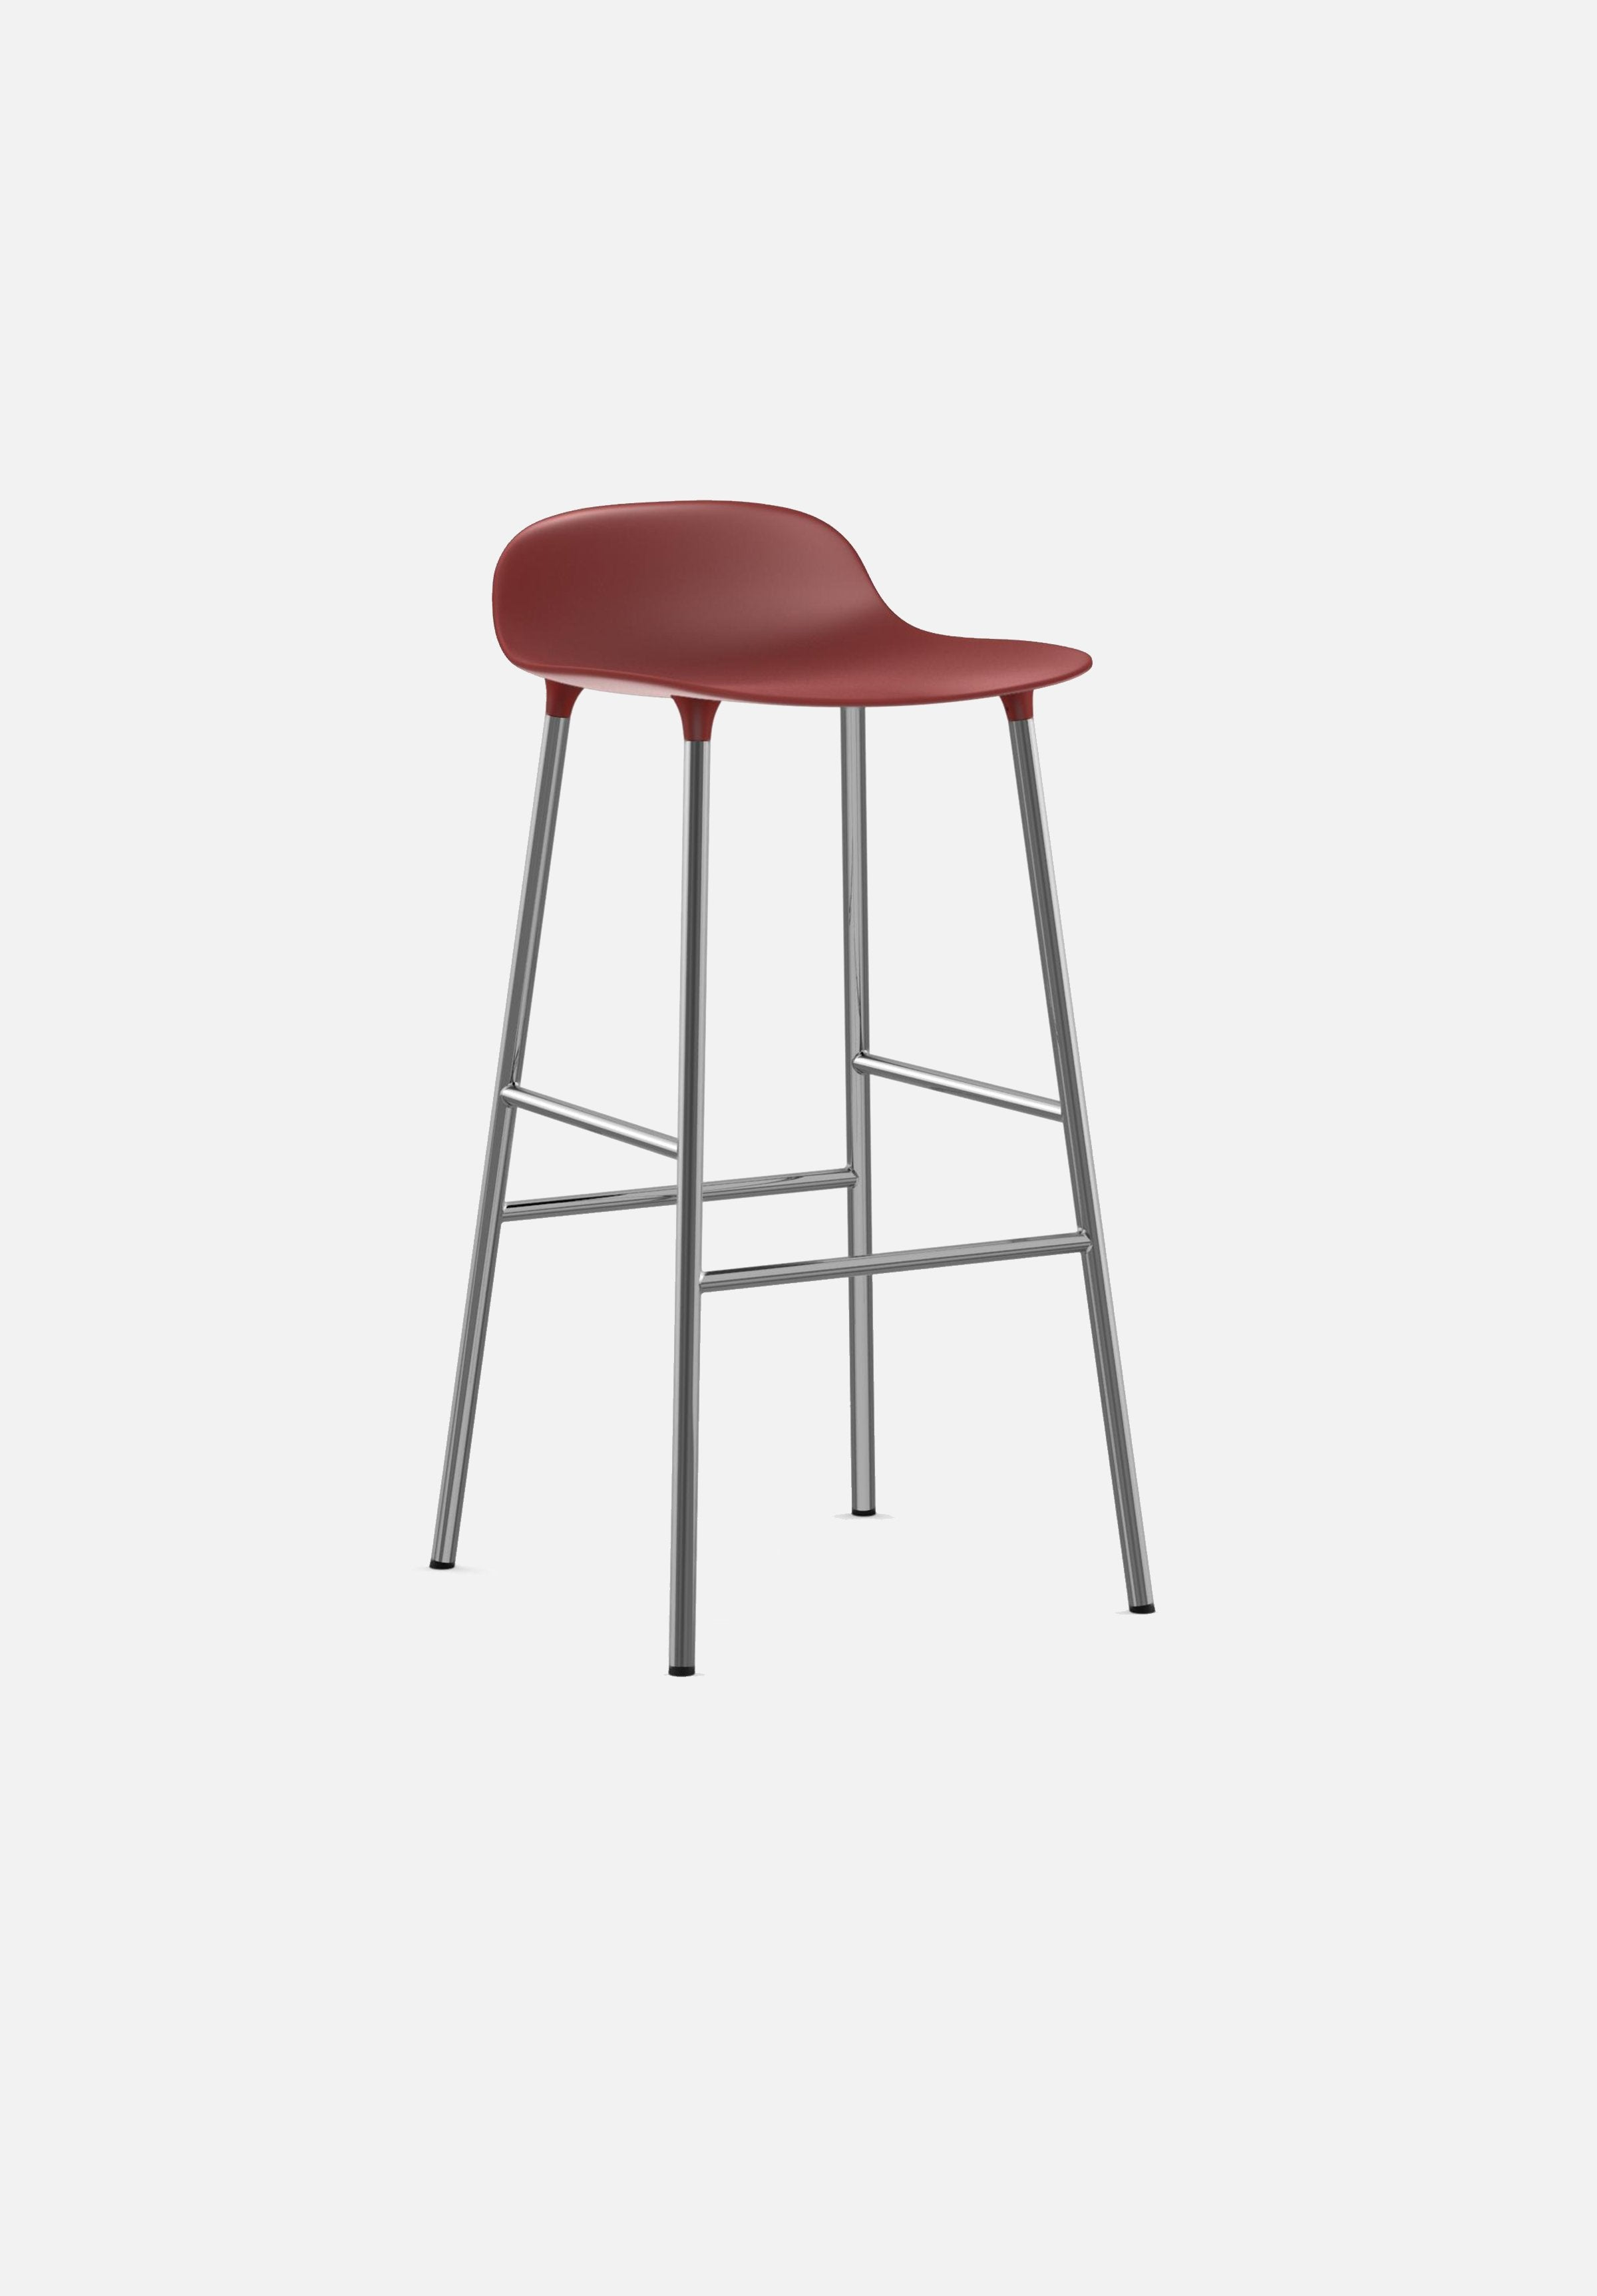 Form Stool — 75cm-Simon Legald-Normann Copenhagen-Red-Chrome-Average-canada-design-store-danish-denmark-furniture-interior